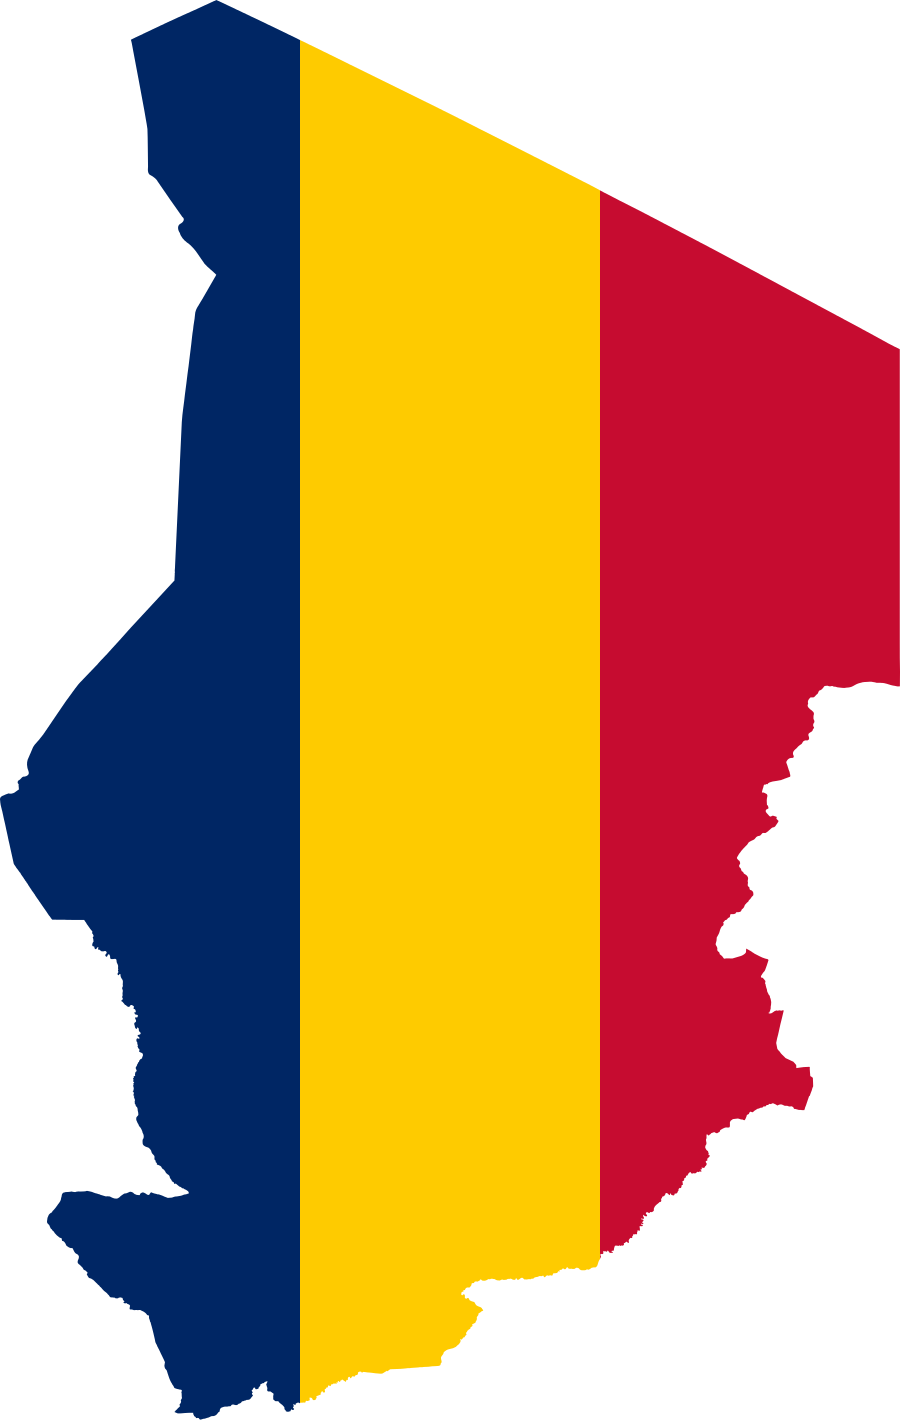 Clipart map nearby. File flag of chad